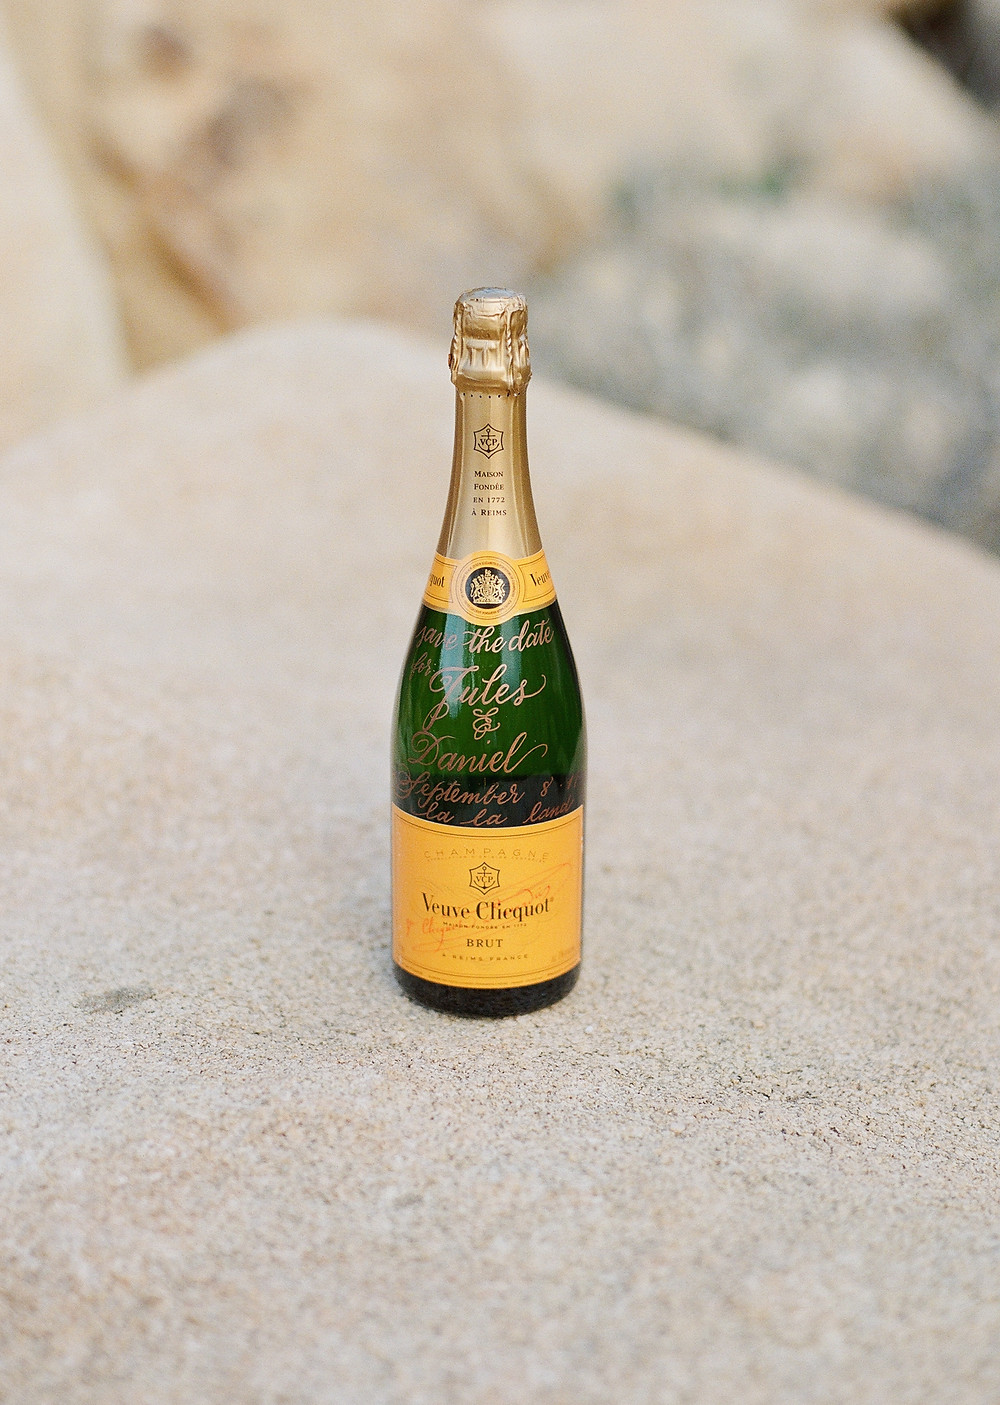 Save the date idea veuve clicquot bottle